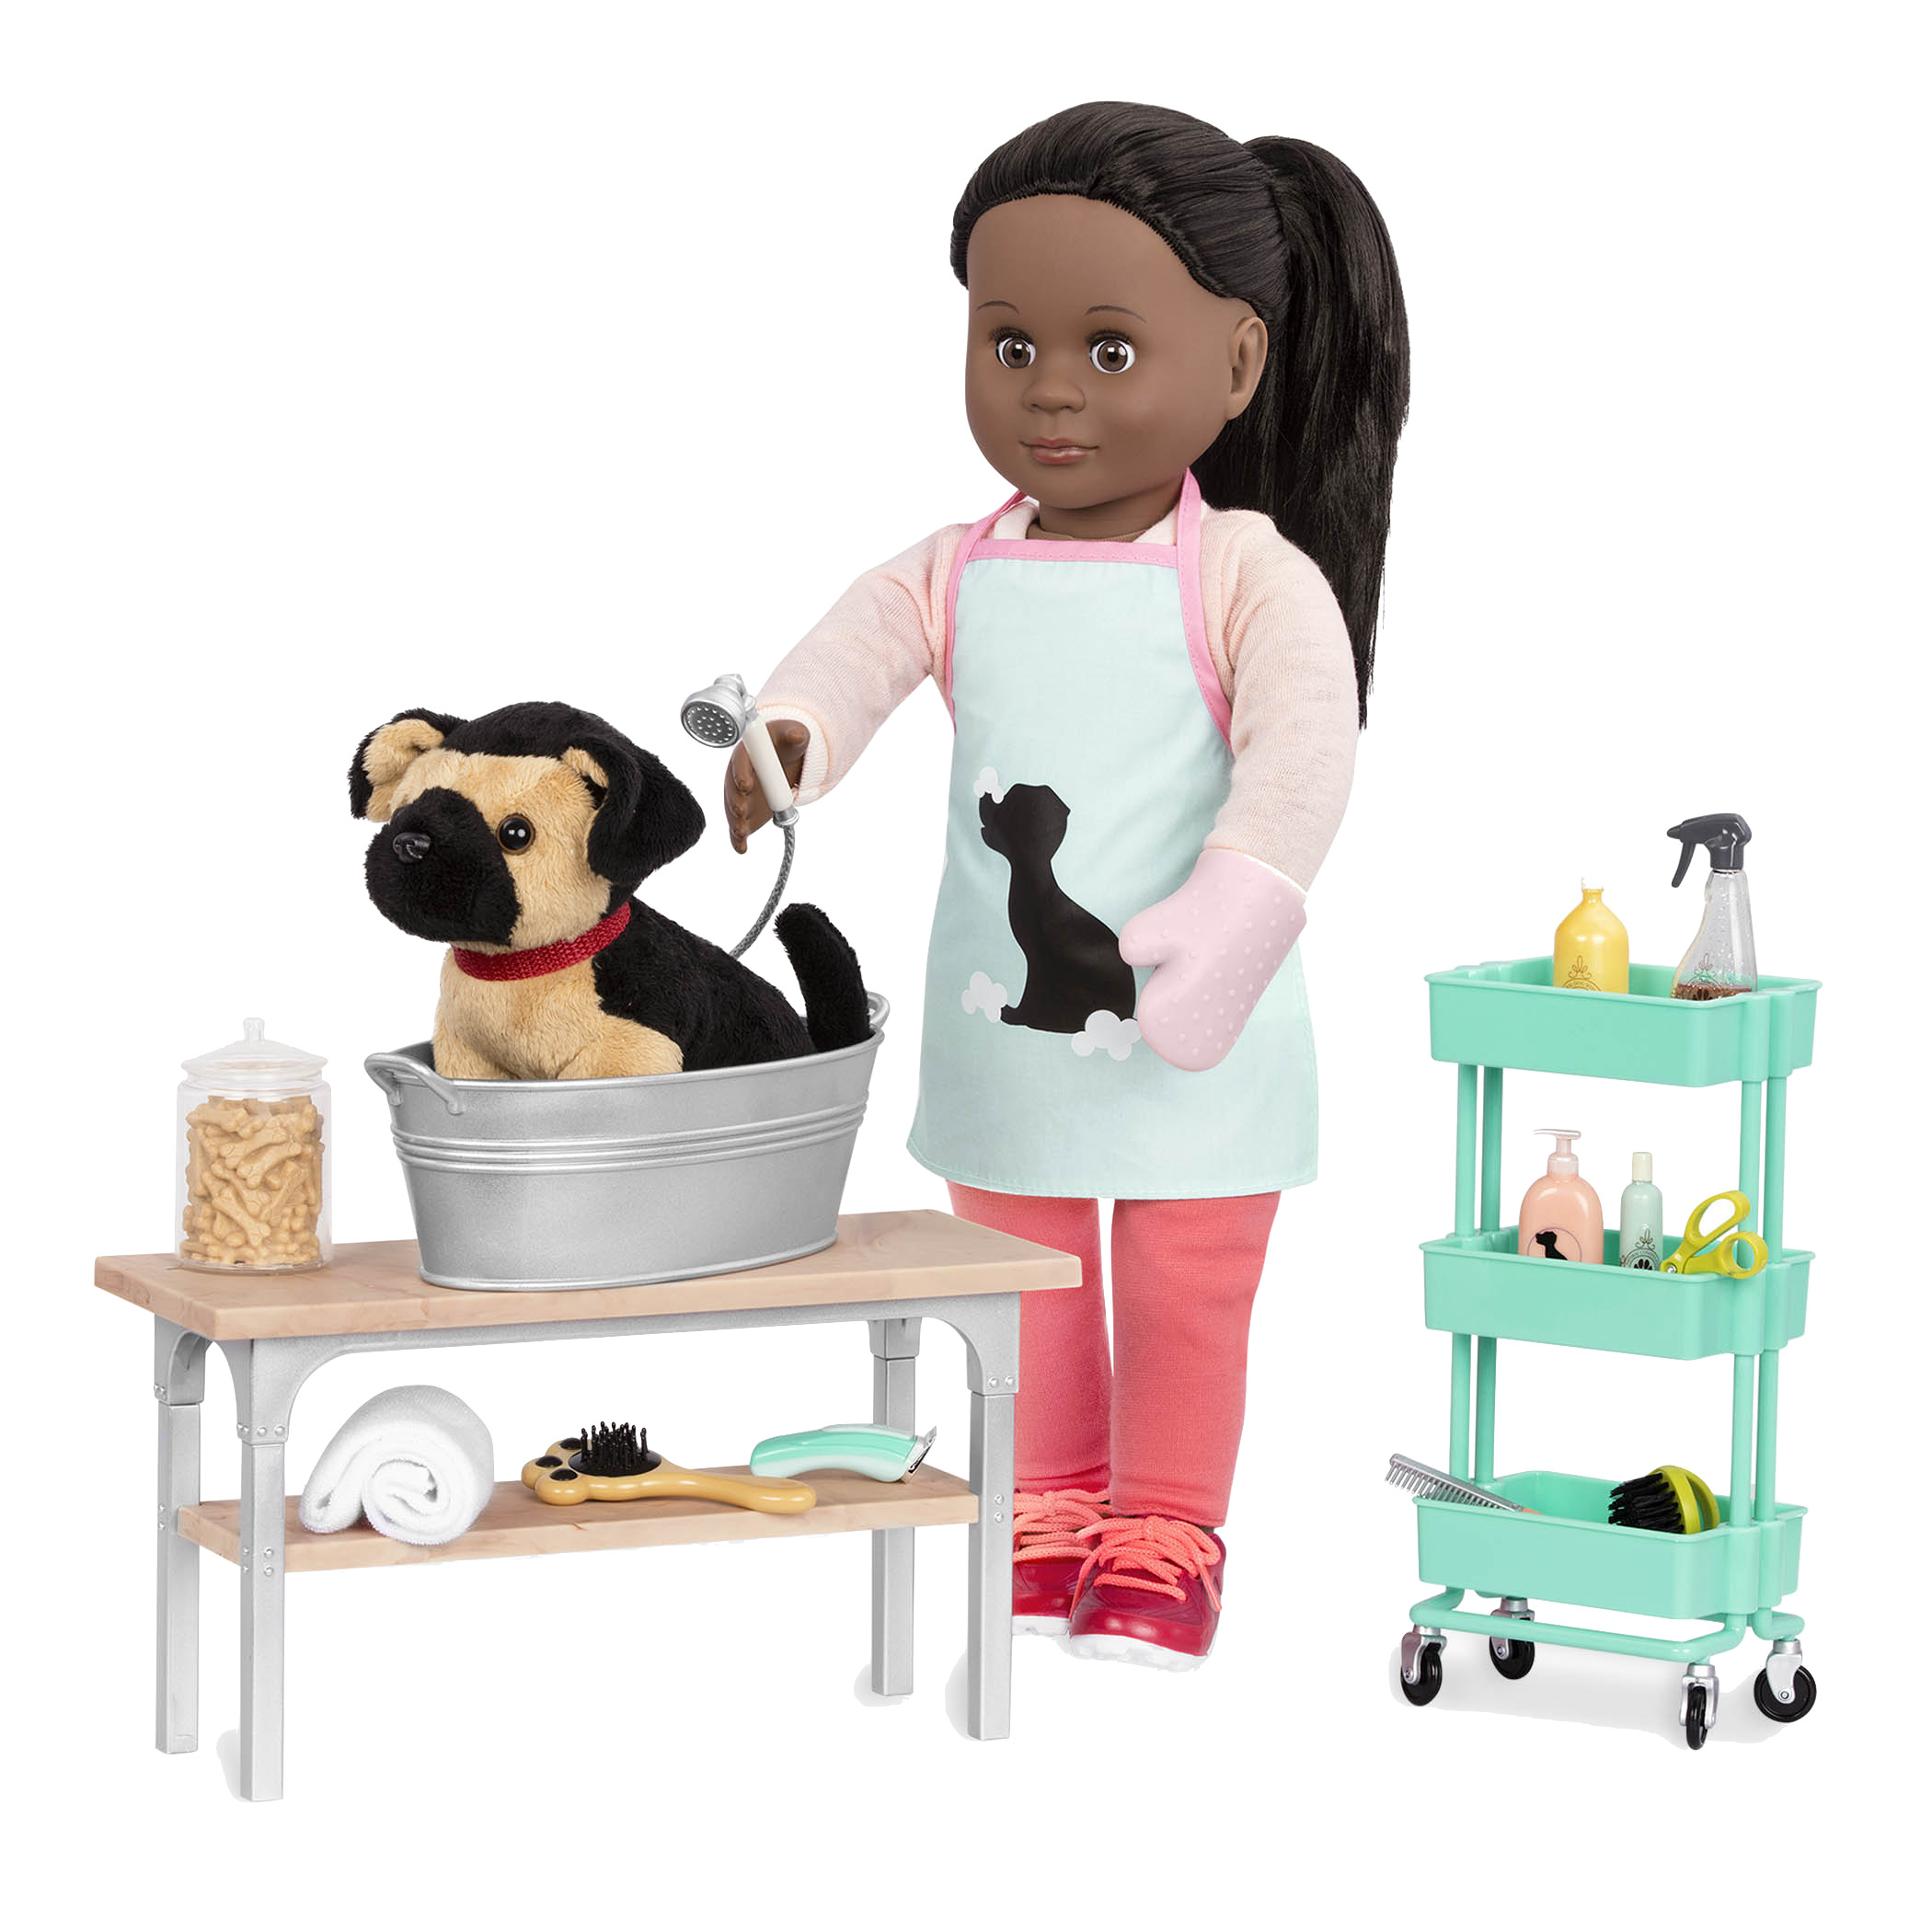 German Shepherd Pup with Meagann and pet grooming set02